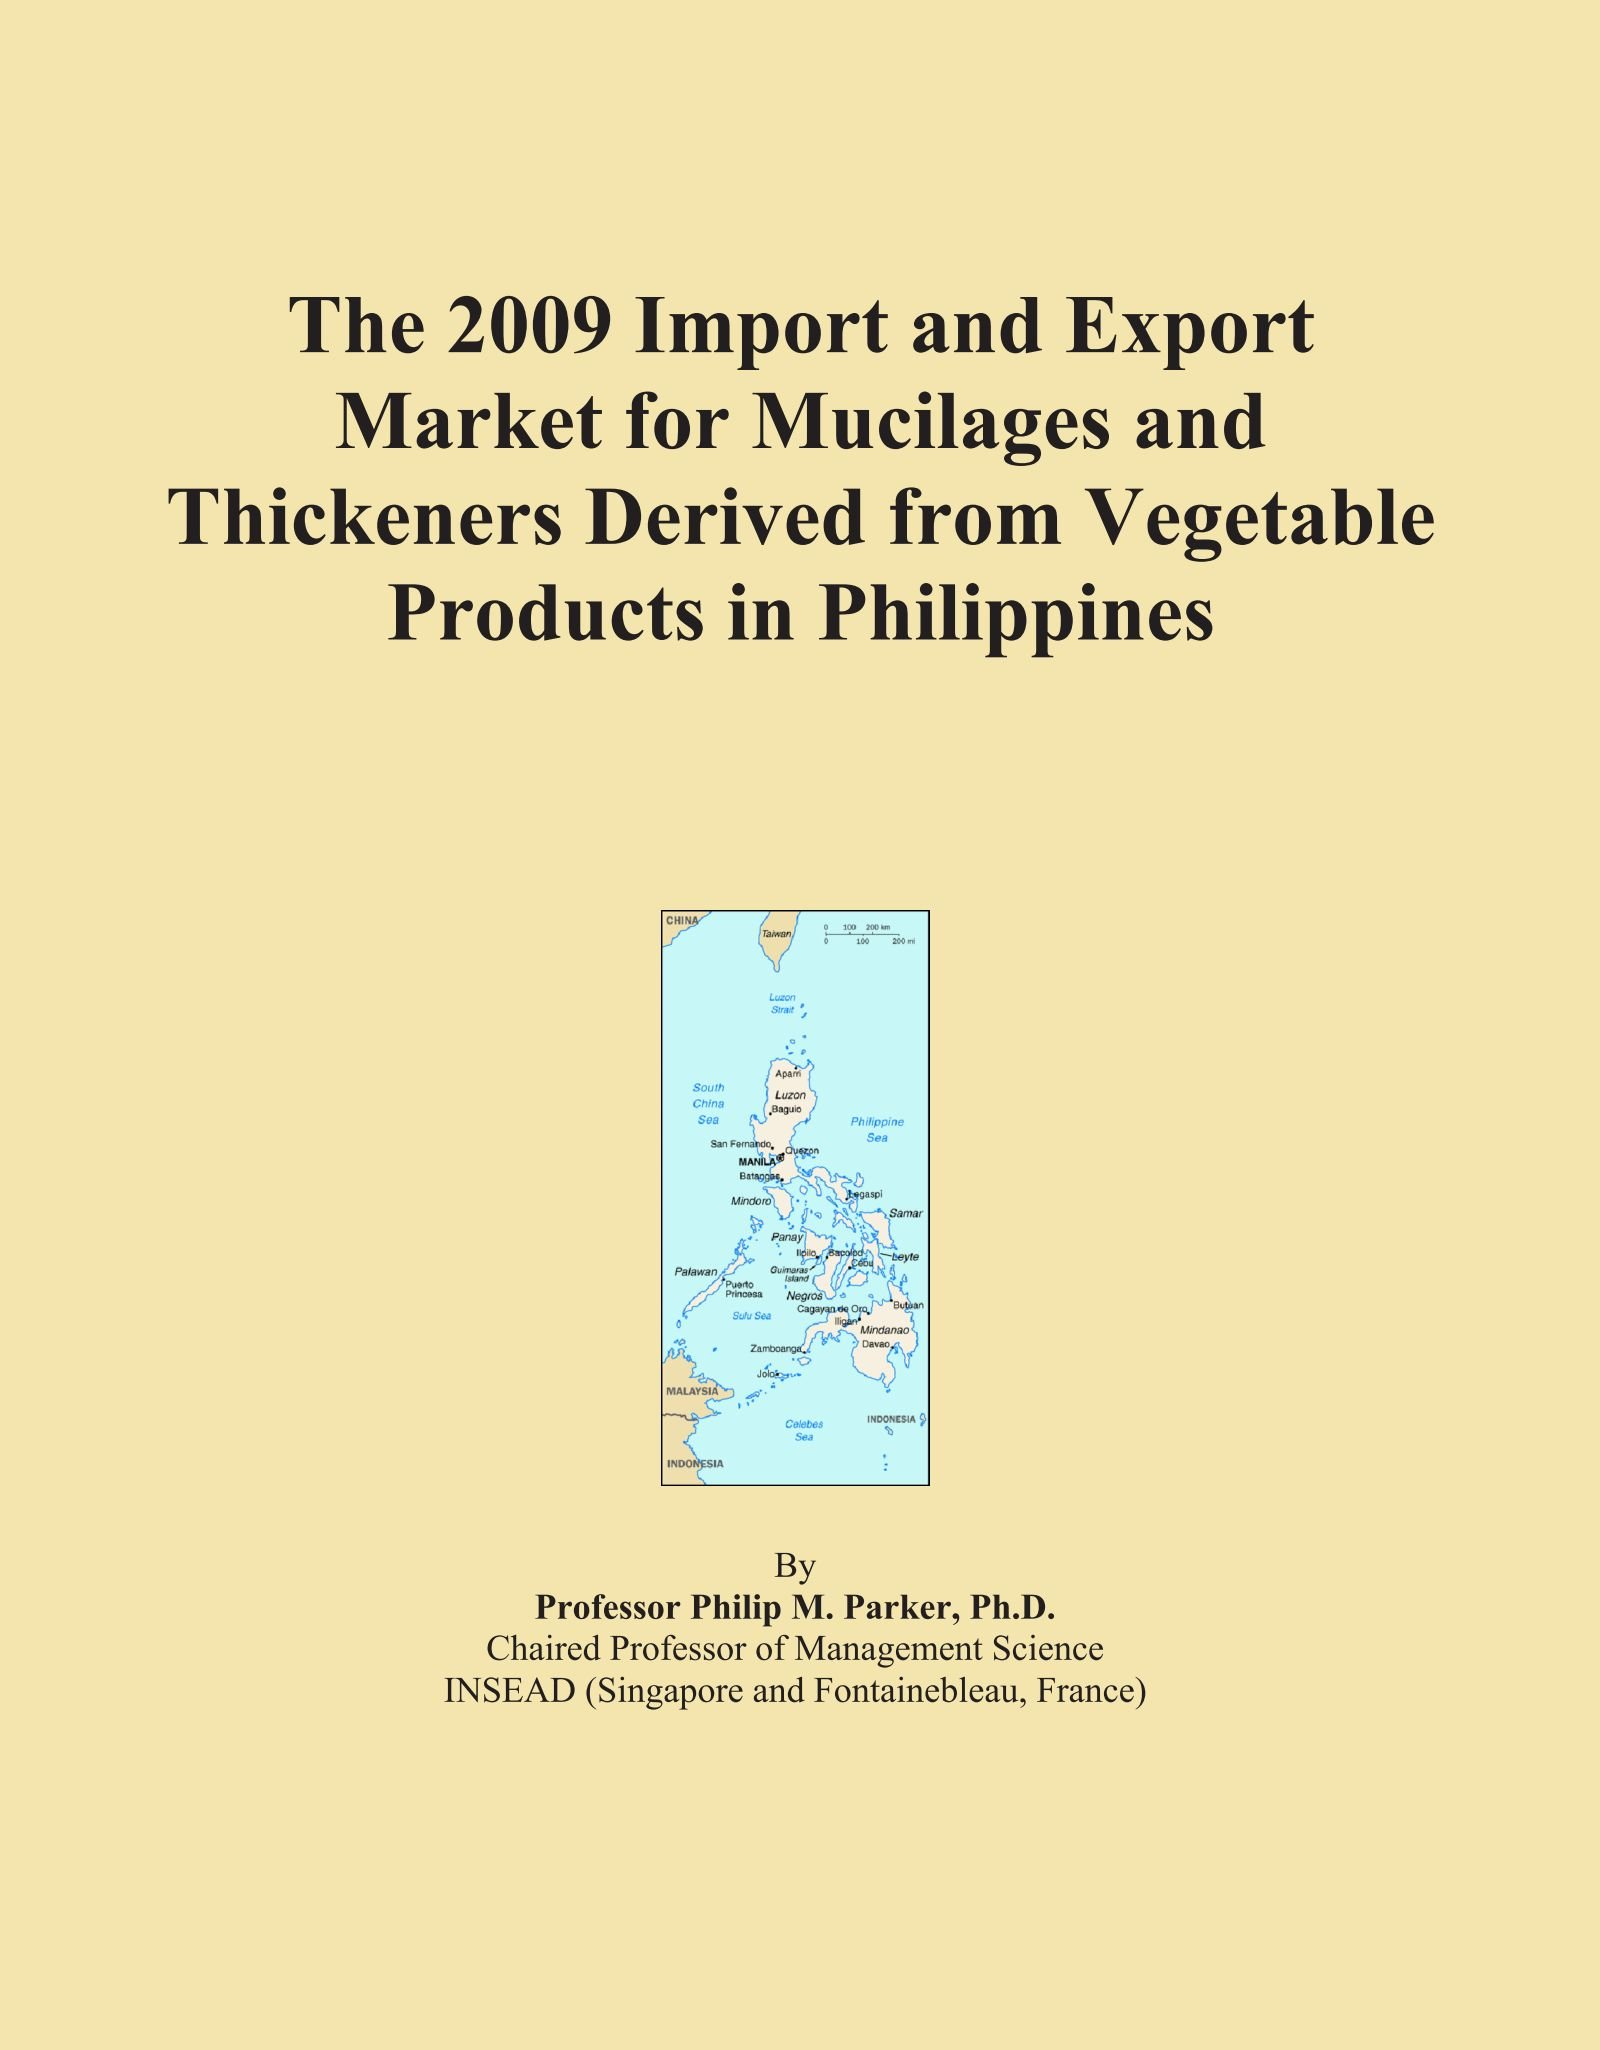 The 2009 Import and Export Market for Mucilages and